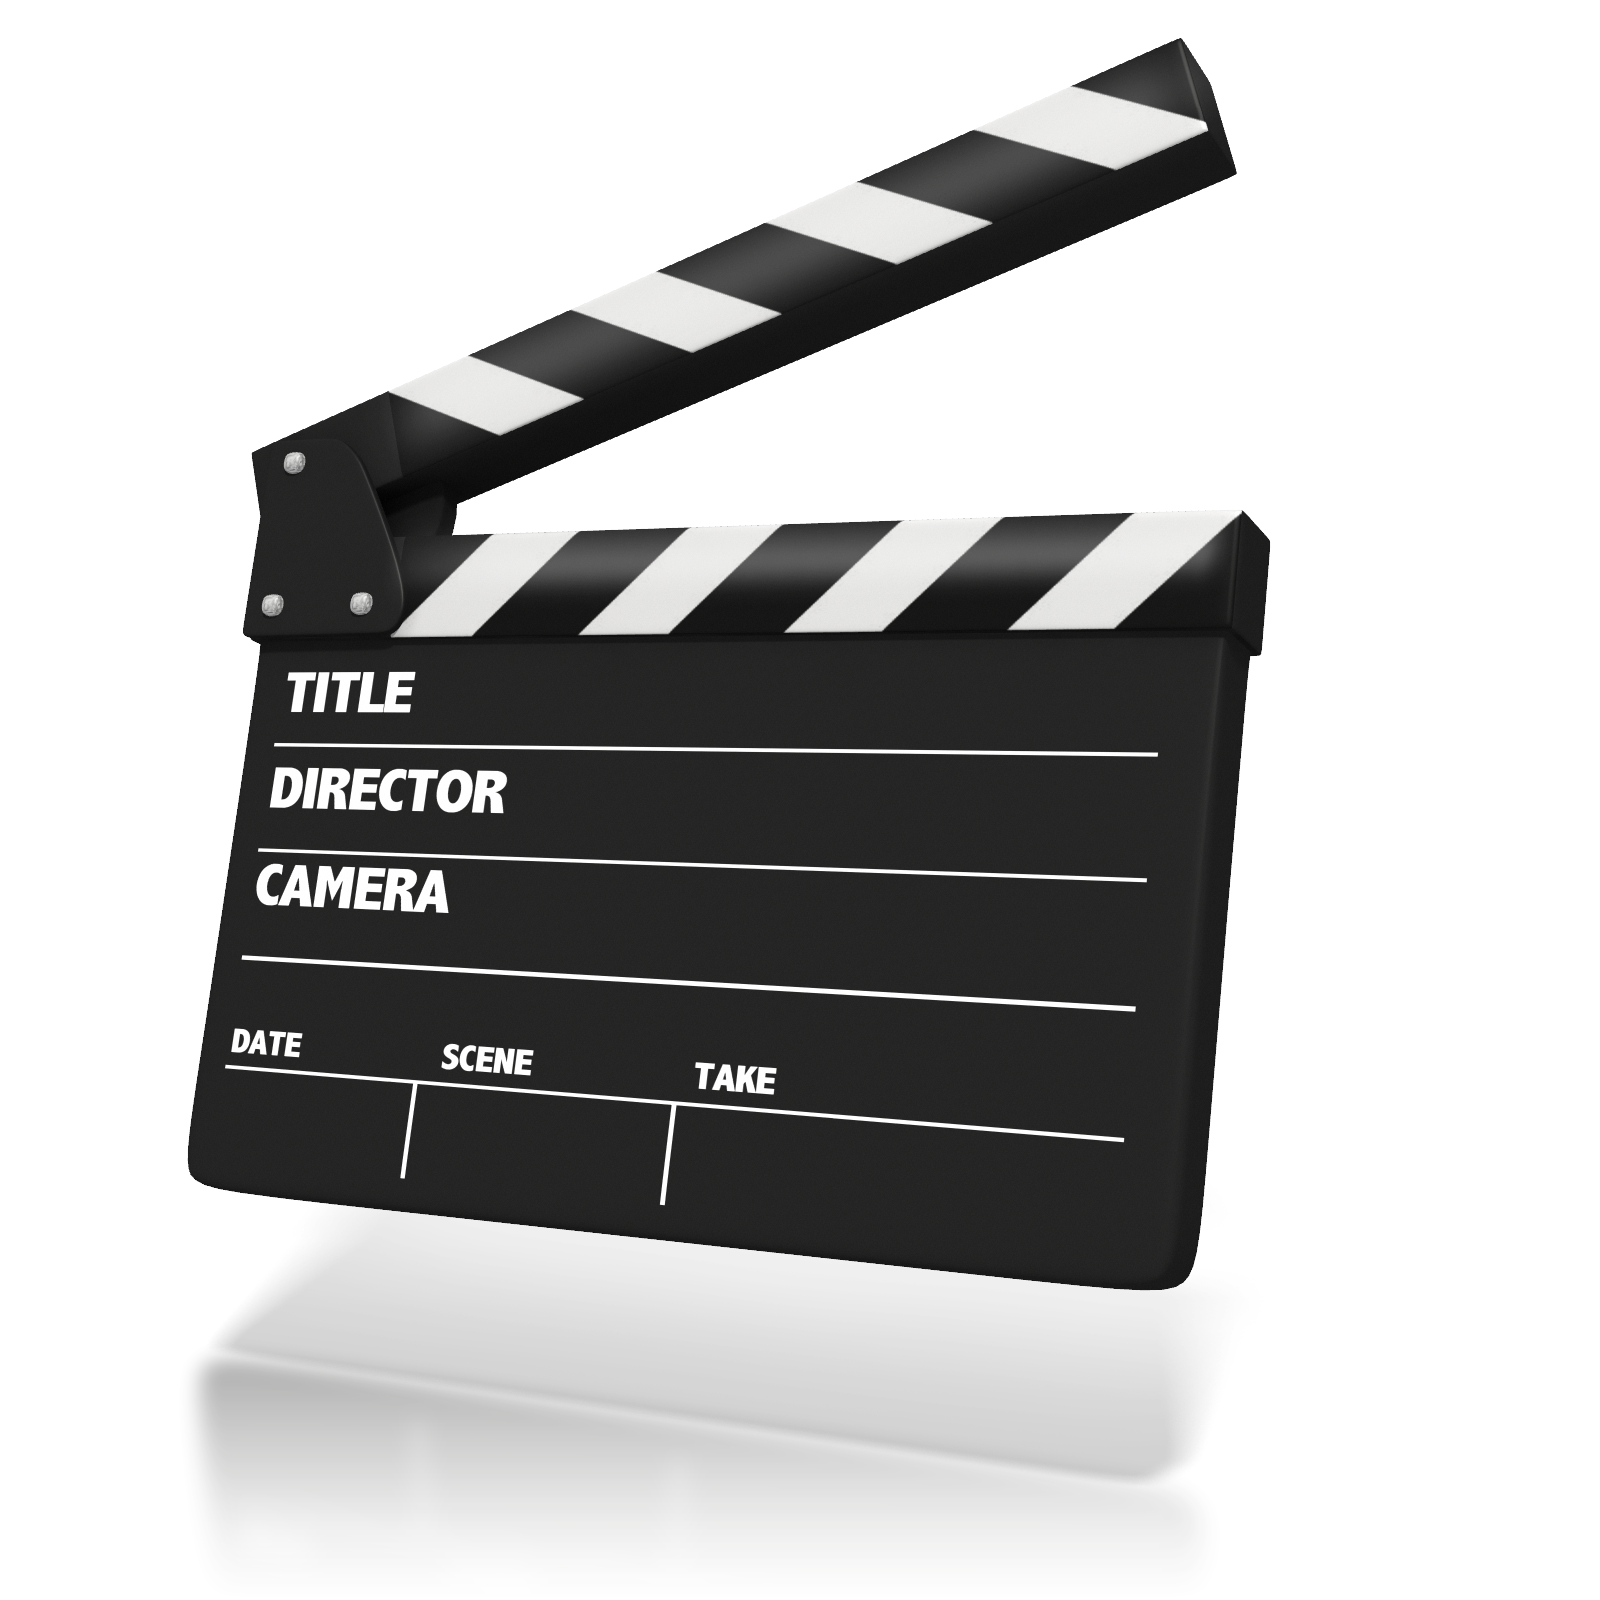 Clapperboard animation presentation clapping. Movie clipart clap